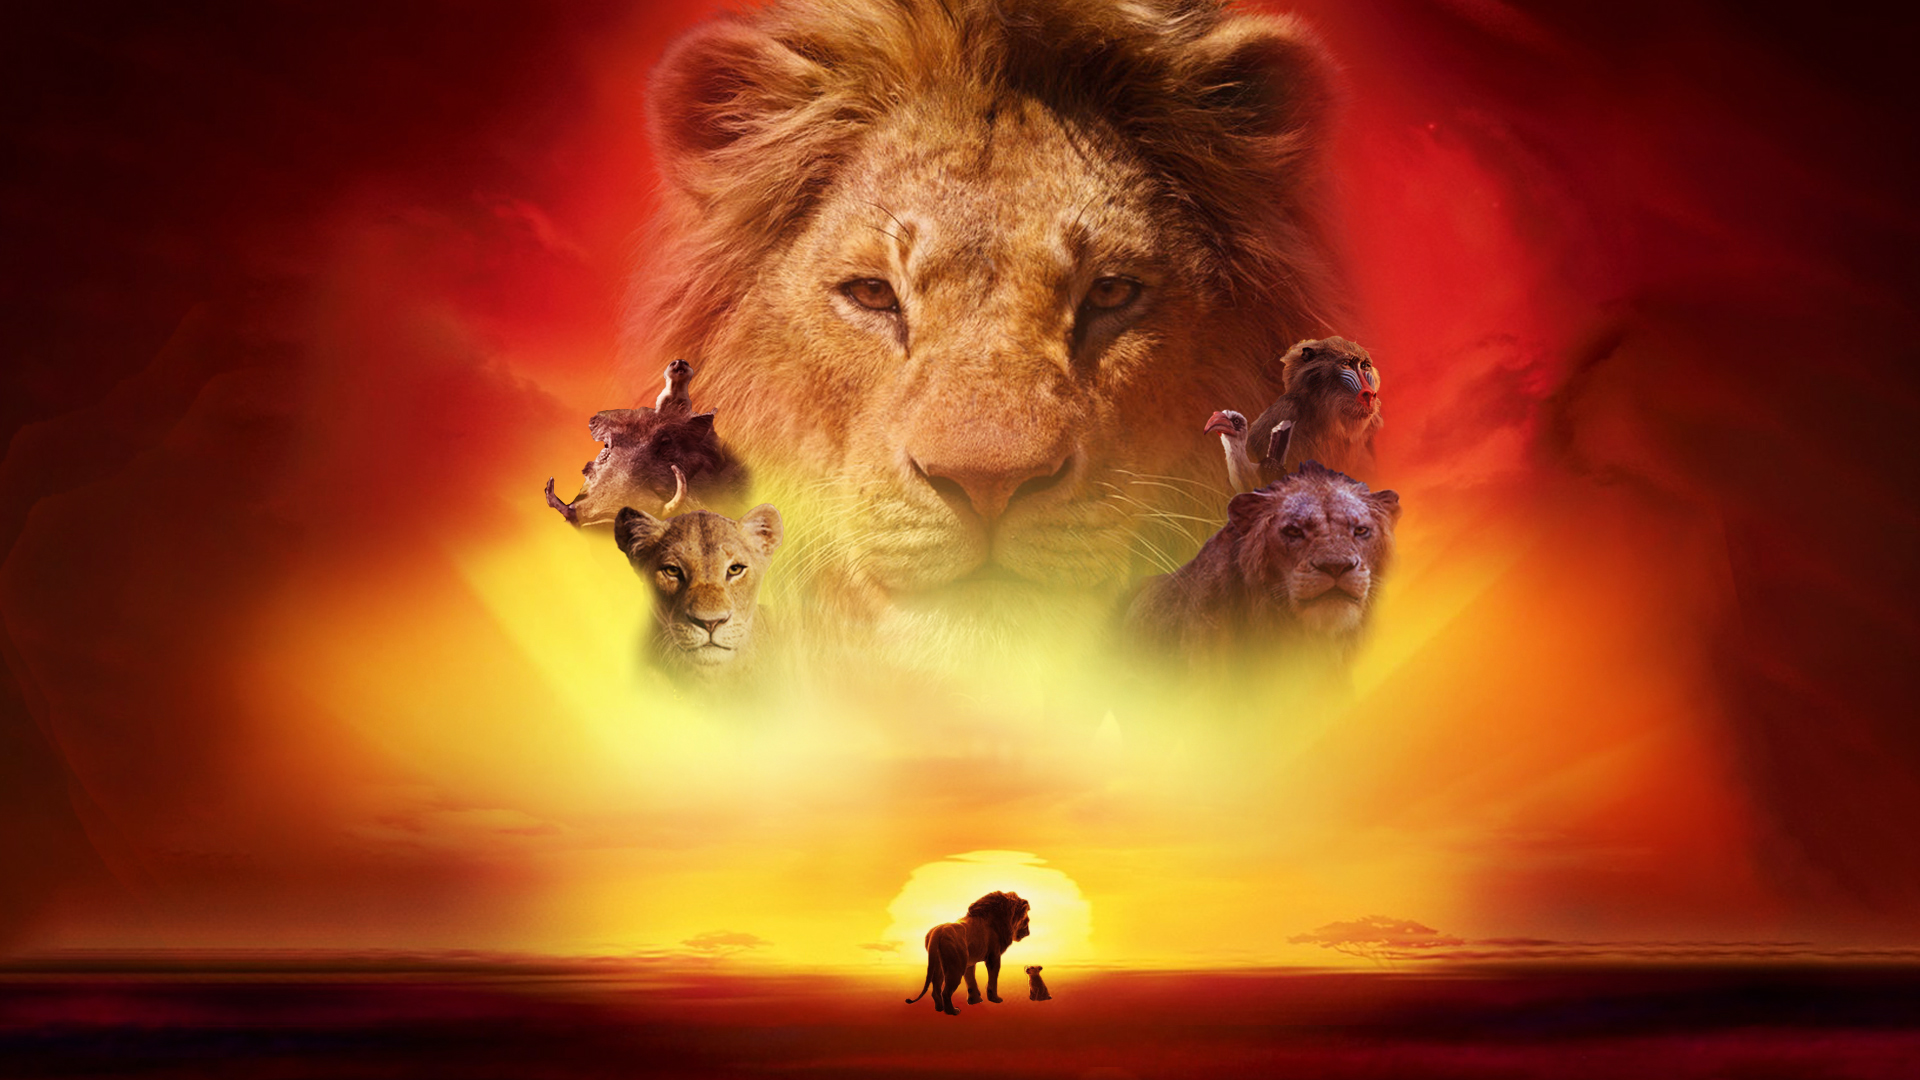 This is a picture of Old Fashioned Lion King Pictures